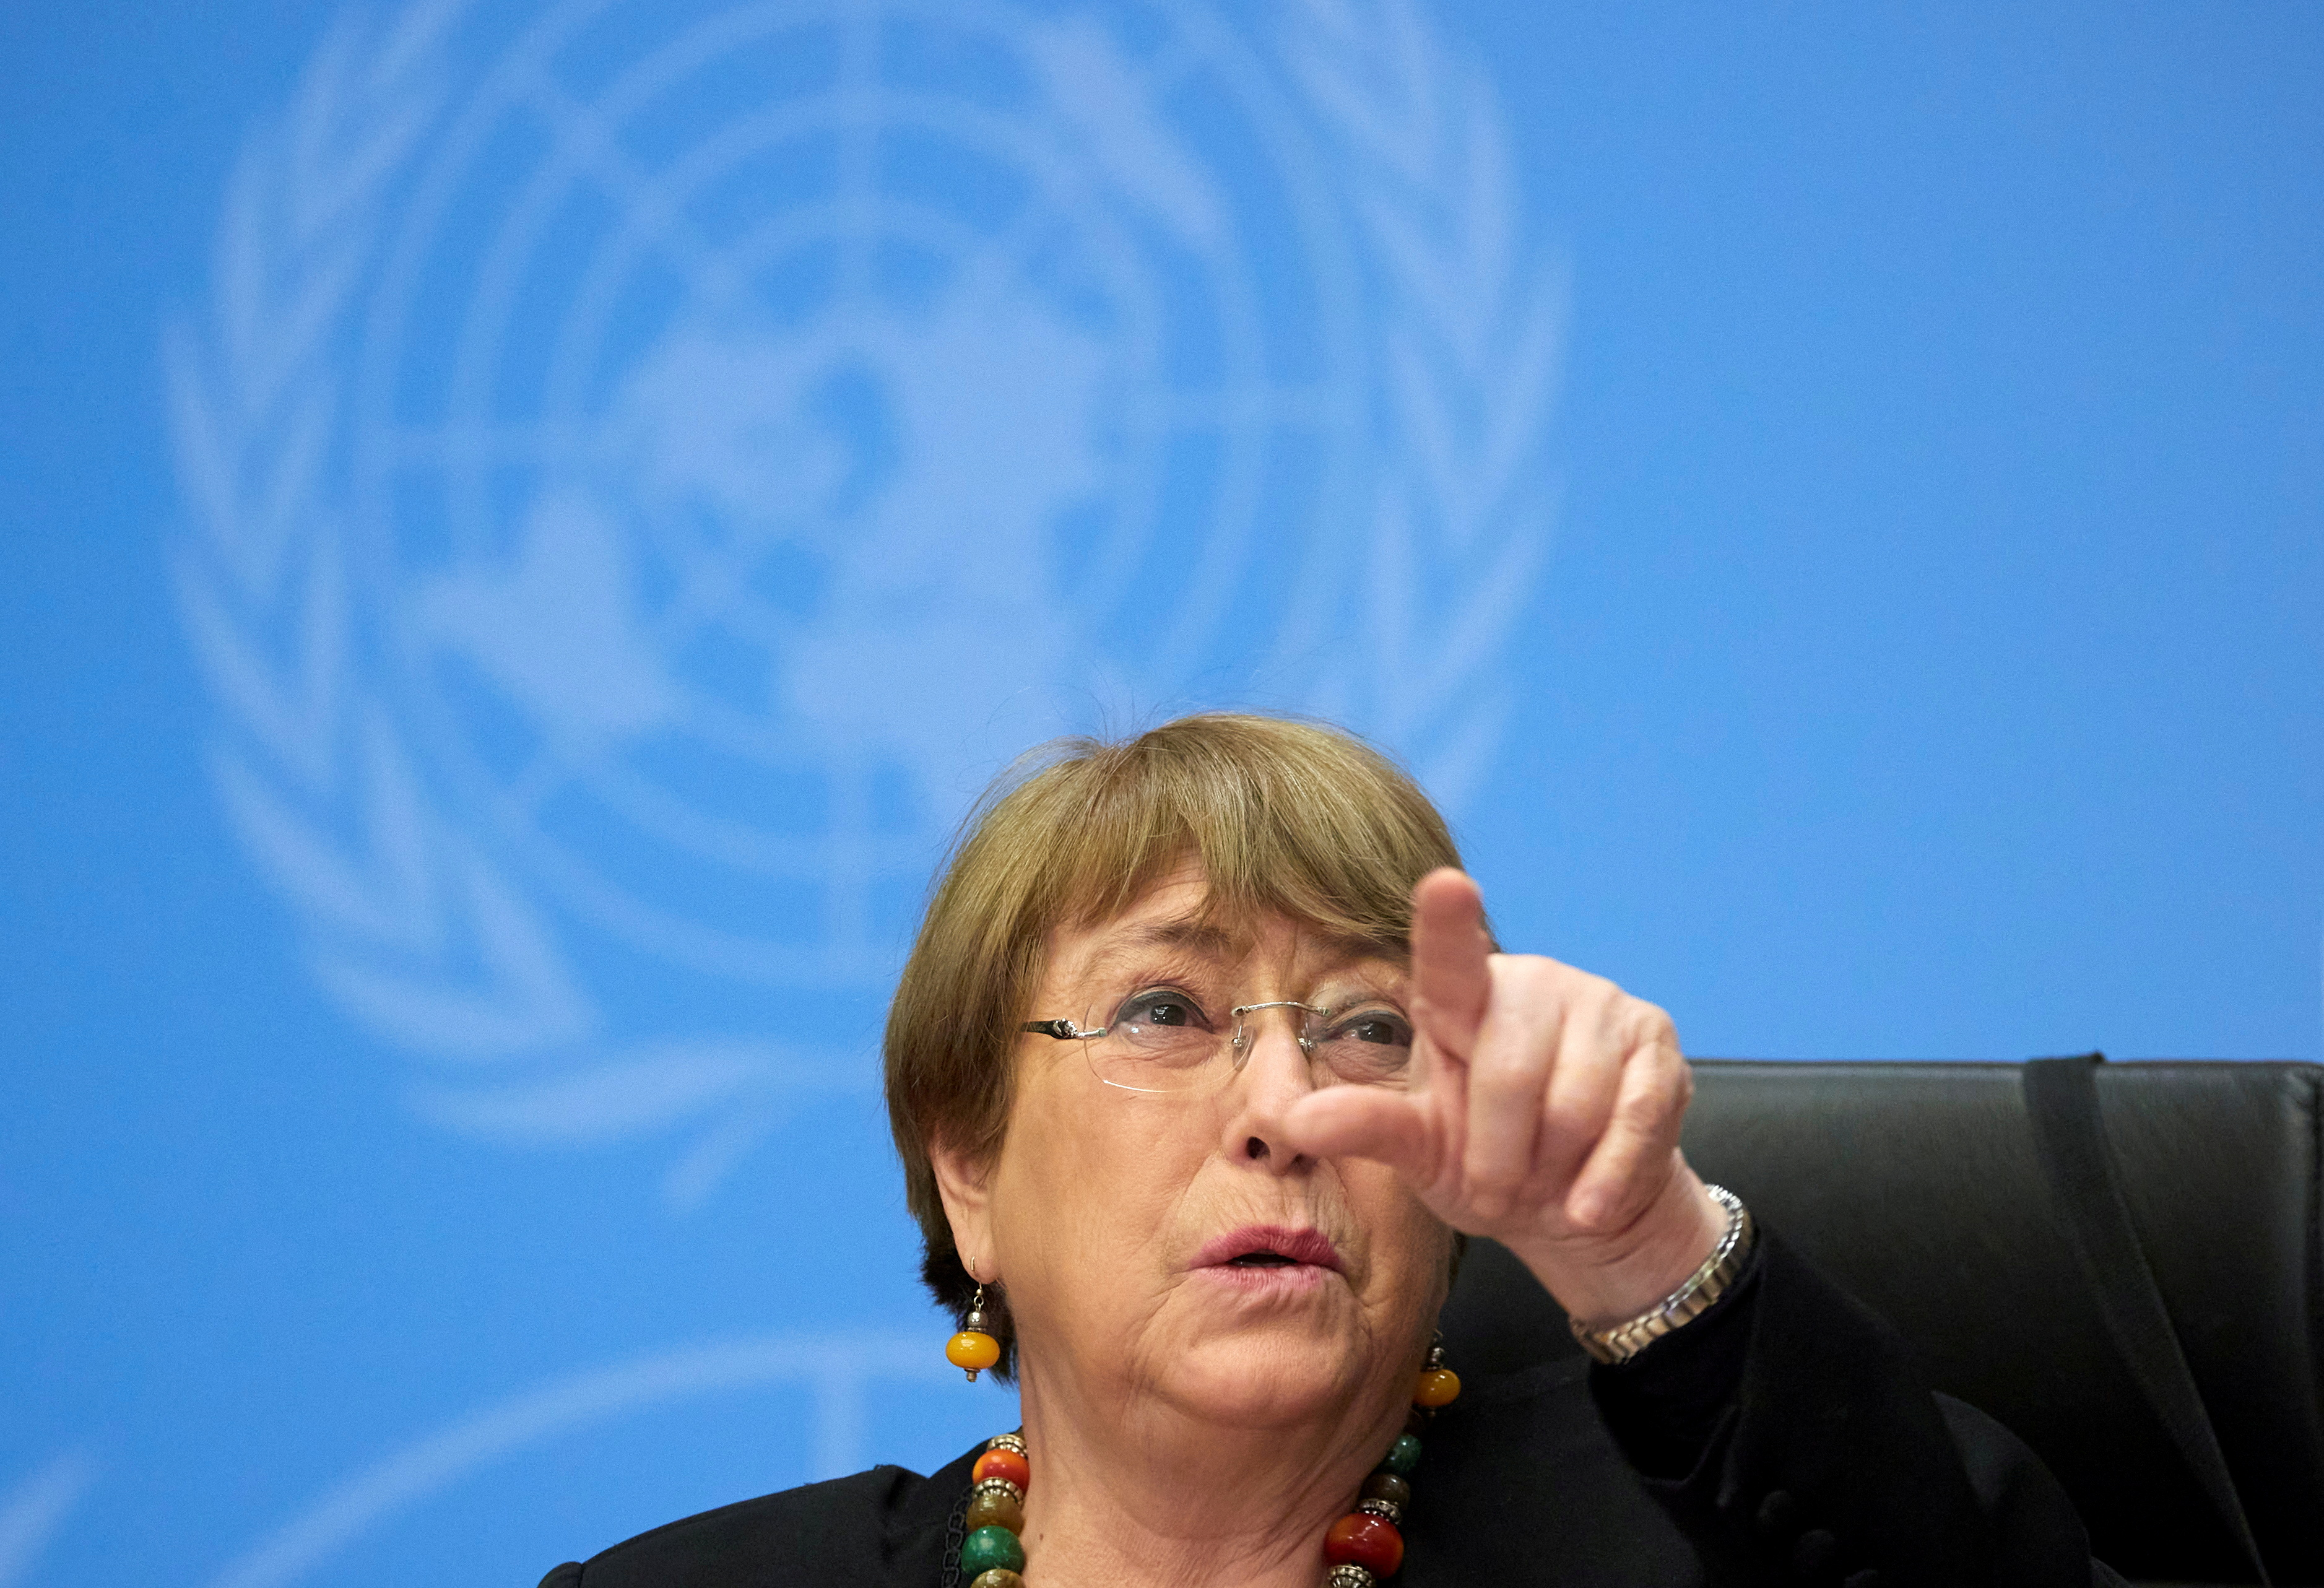 U.N. High Commissioner for Human Rights Michelle Bachelet gestures during a news conference at the European headquarters of the United Nations in Geneva, Switzerland, December 9, 2020. REUTERS/Denis Balibouse/File Photo